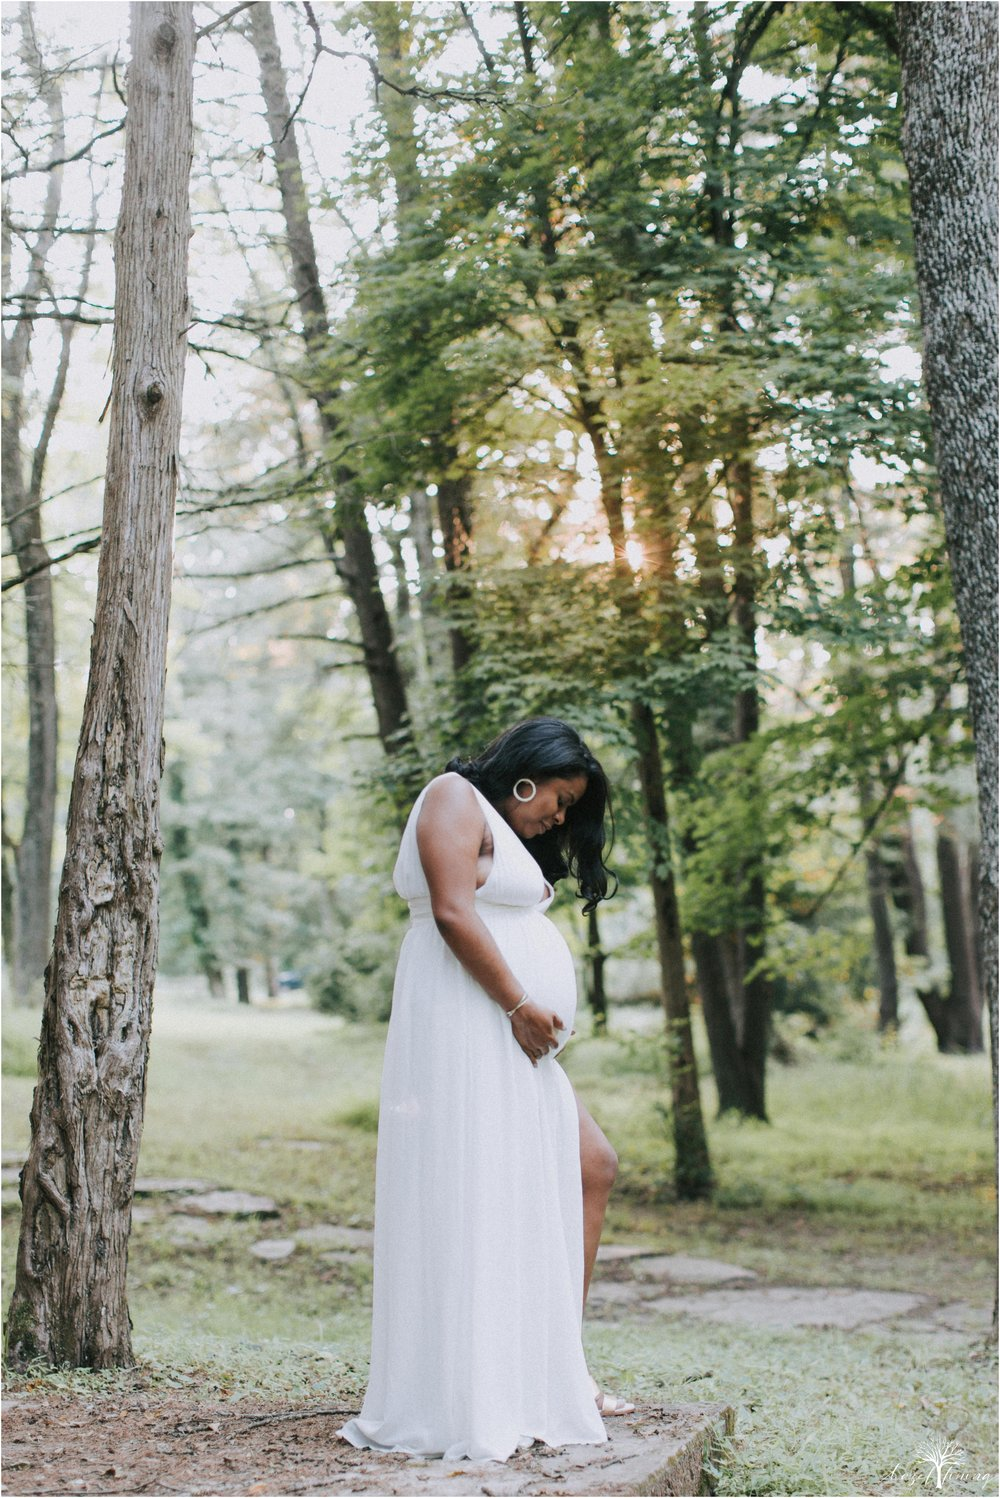 leyka-kristofer-chaparro-ralph-stover-state-park-summer-golden-hour-stream-maternity-session-hazel-lining-travel-wedding-elopement-photography_0040.jpg